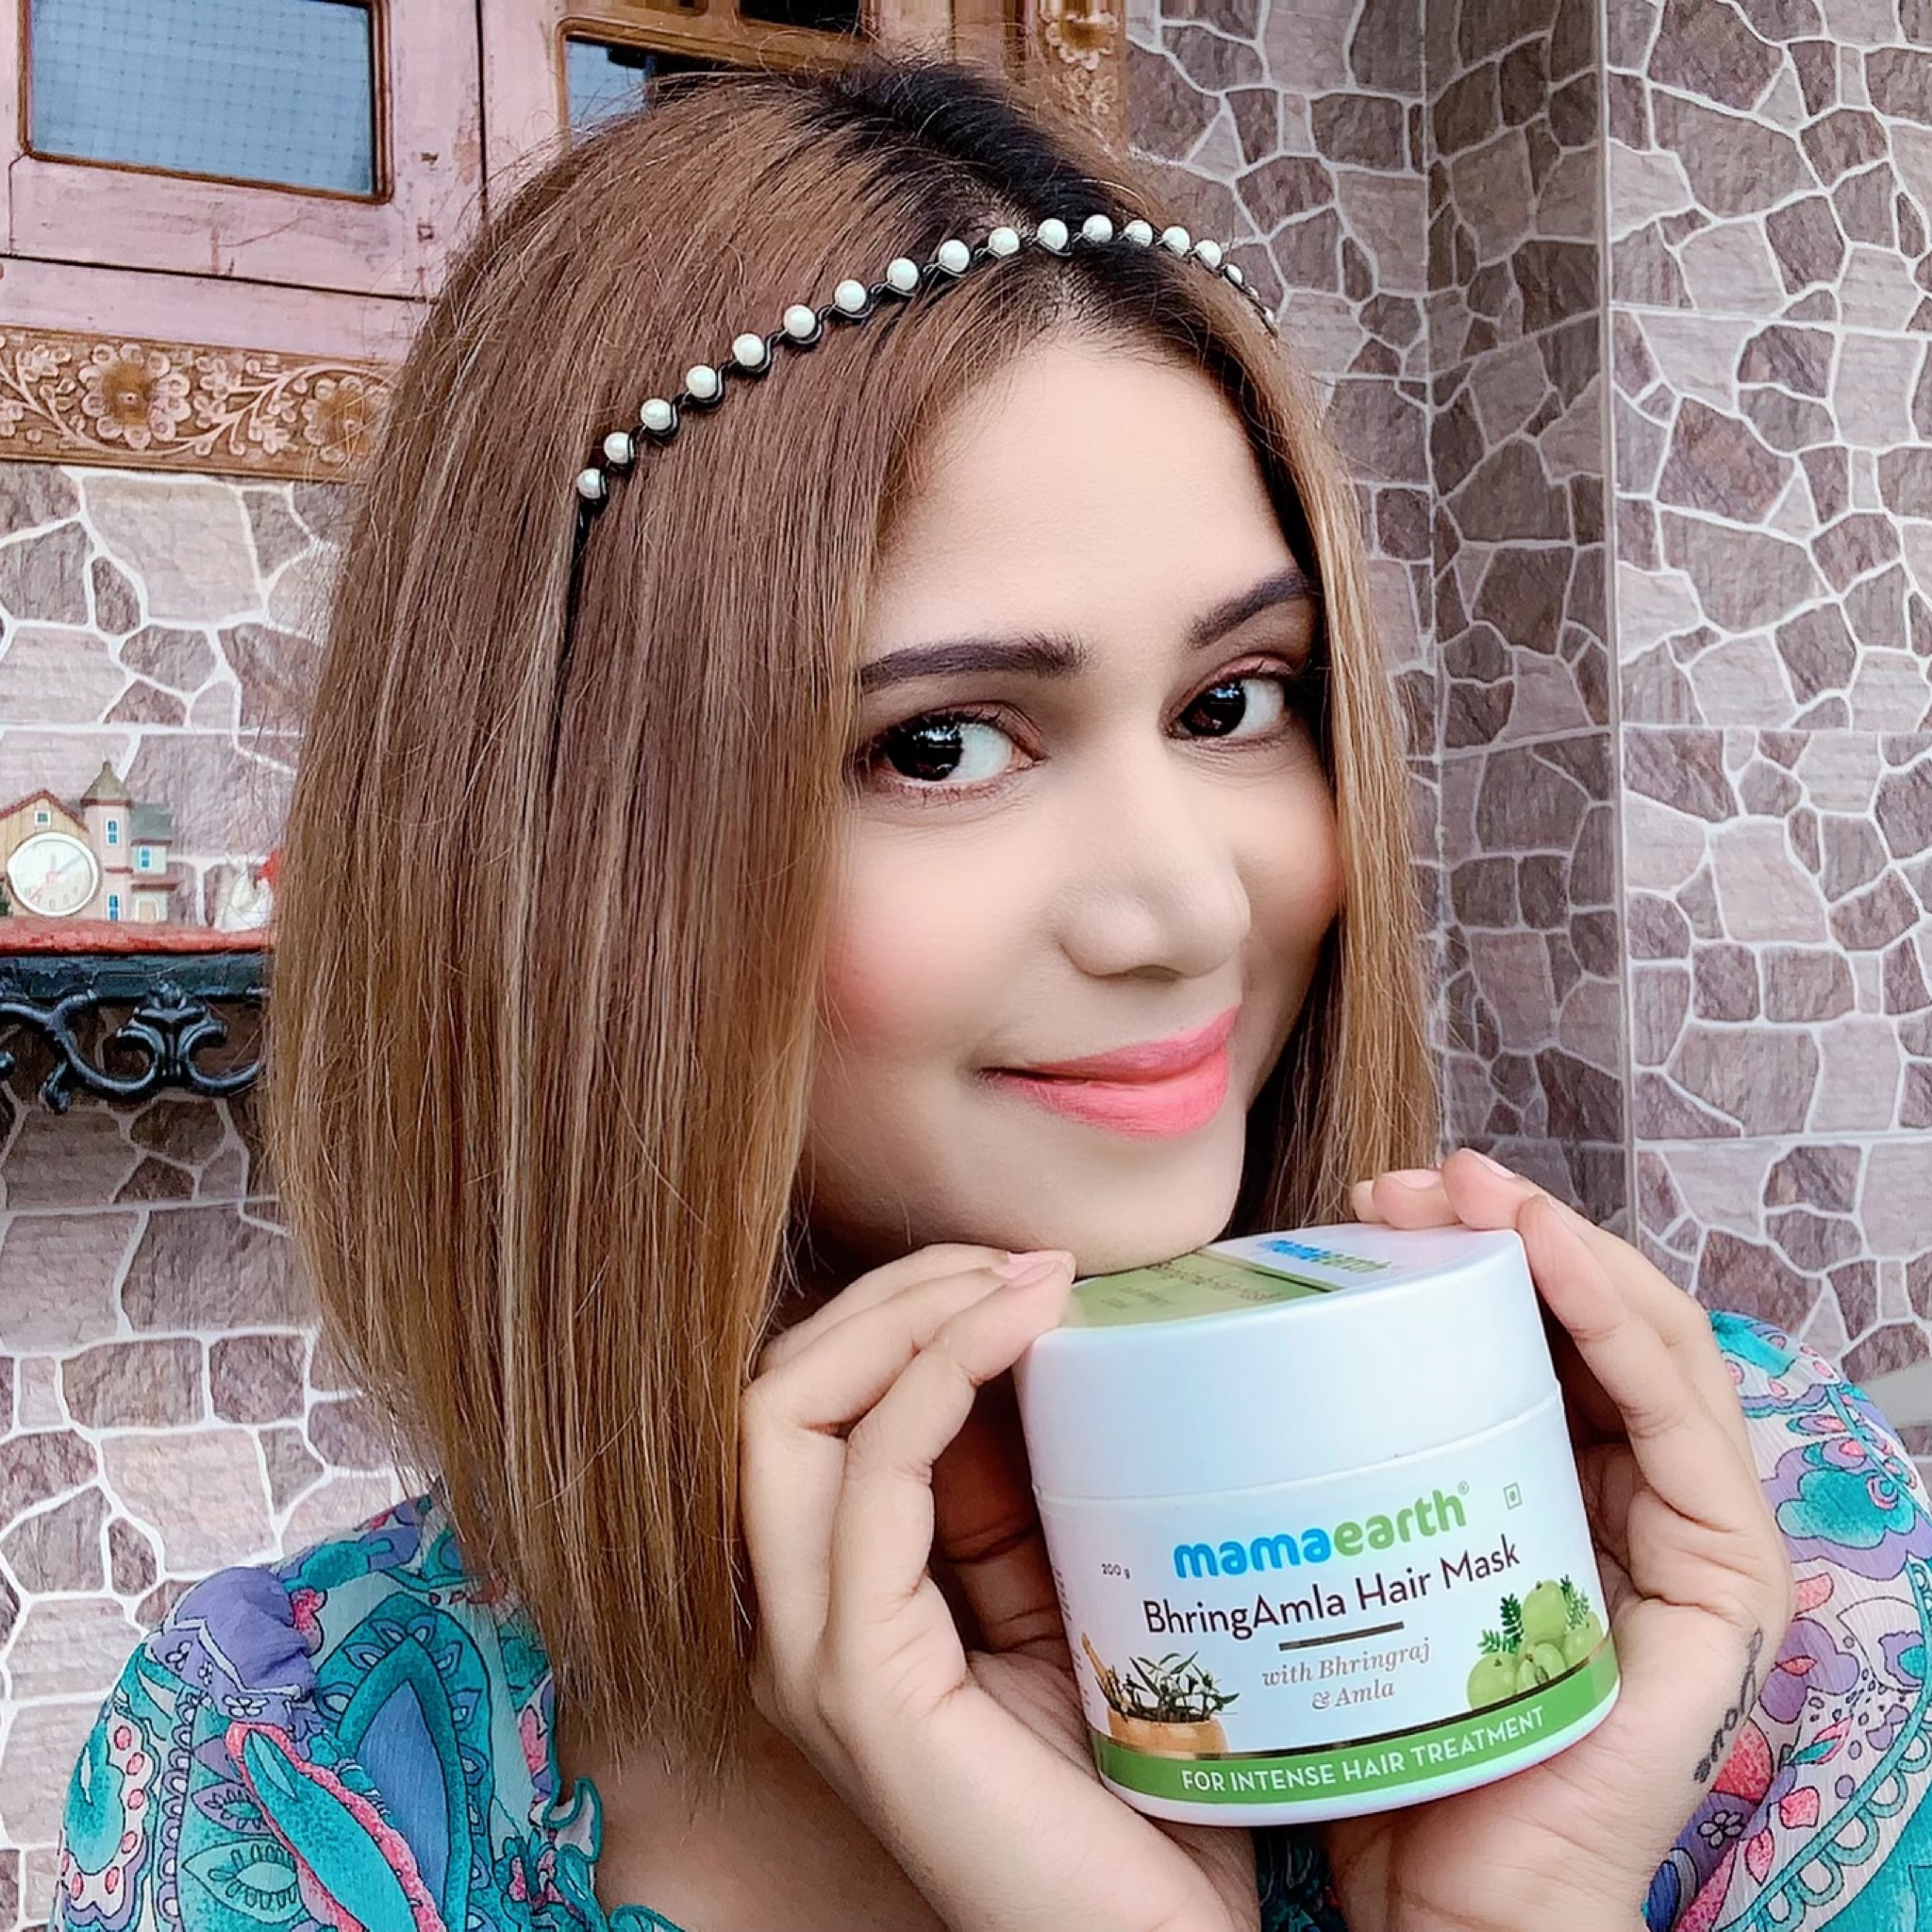 Mamaearth BhringAmla Hair Mask-BEST HAIR MASK WITH AMAZING RESULTS-By mahekhanitha-1